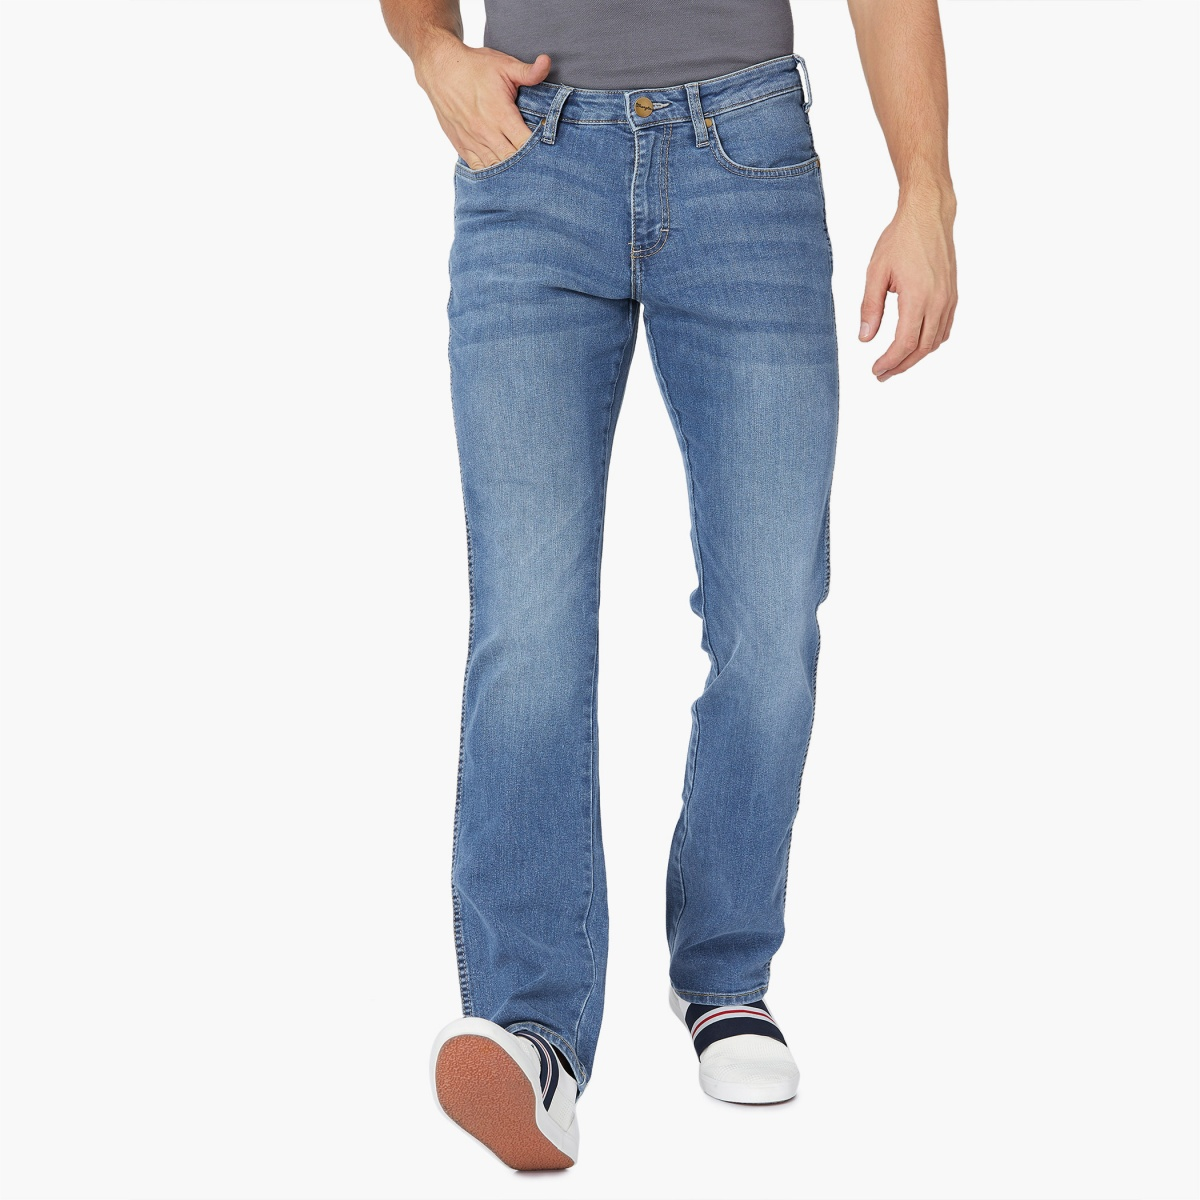 WRANGLER Stonewashed Mid Rise Regular Fit Whiskered Jeans